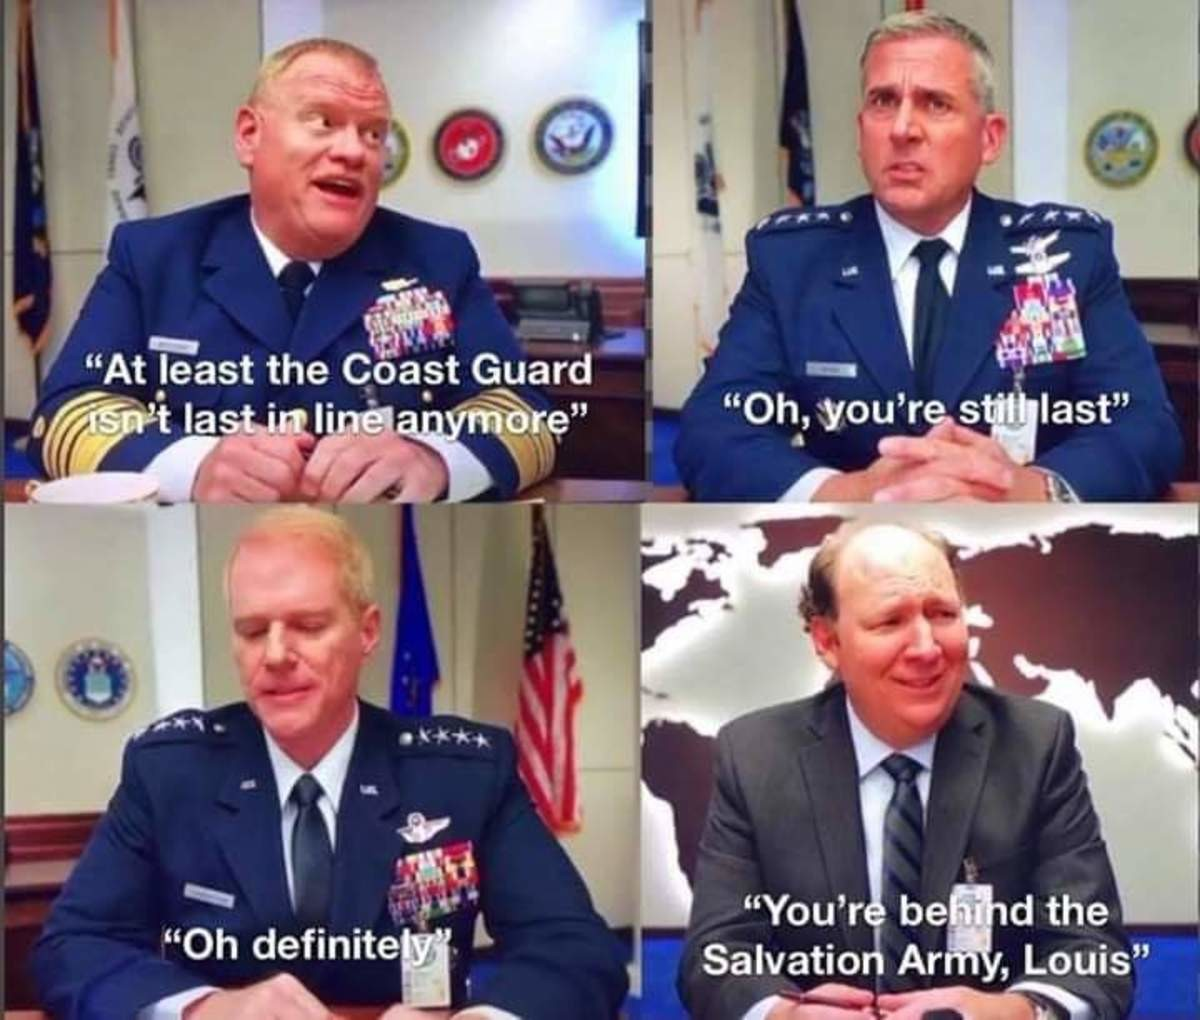 Heh, Stupid Coat Guard. .. Space Force is, only just barely functional as a comedy. Like, I see enormous talents, but the first two episodes just had a script and I'm not watching more wi